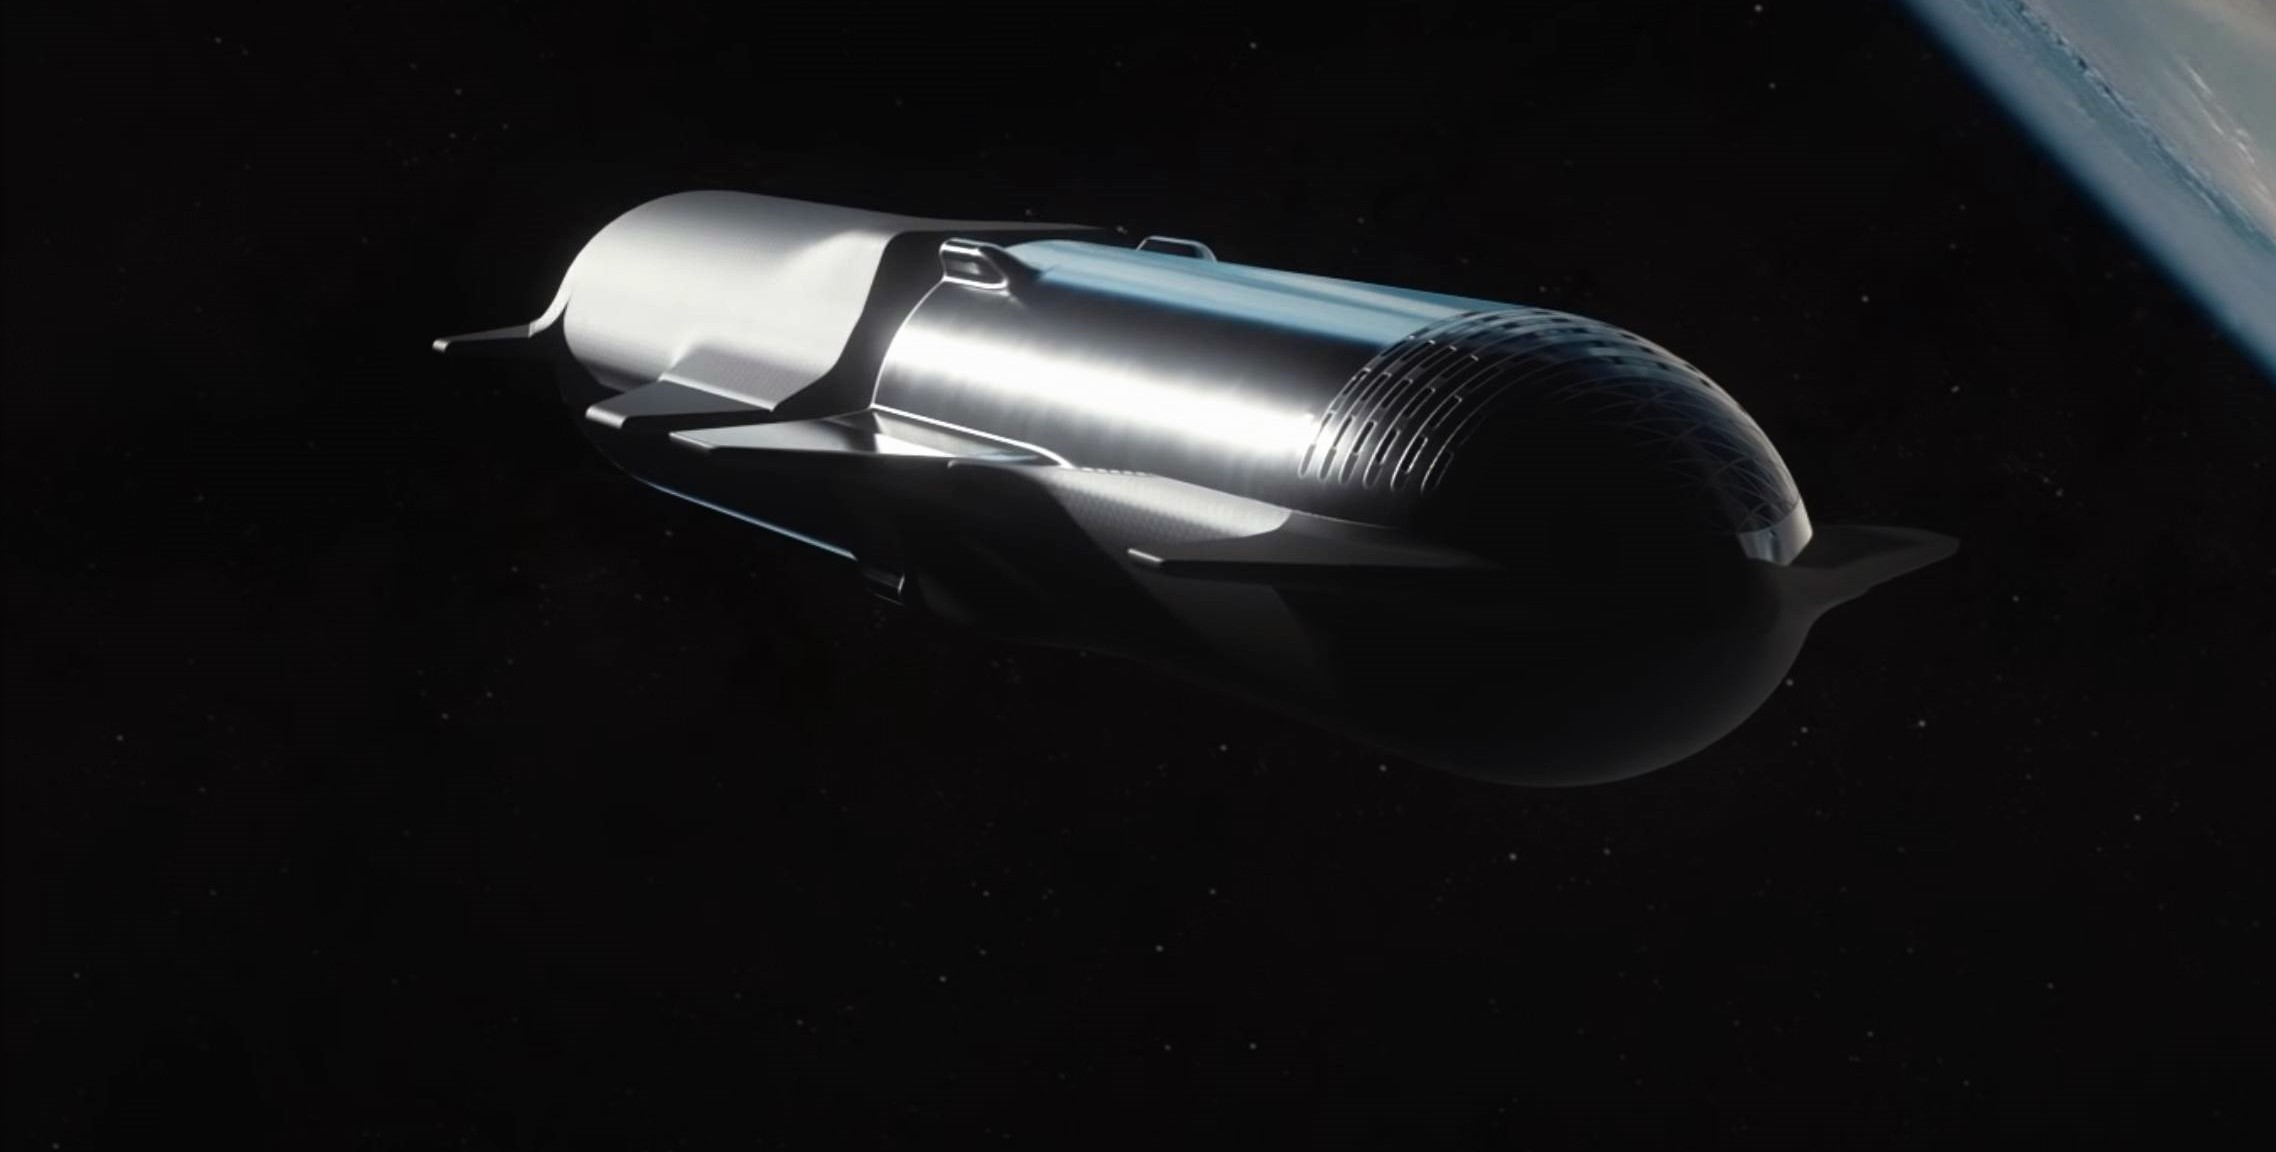 Starship Super Heavy 2019 (SpaceX) refueling 6 crop 2